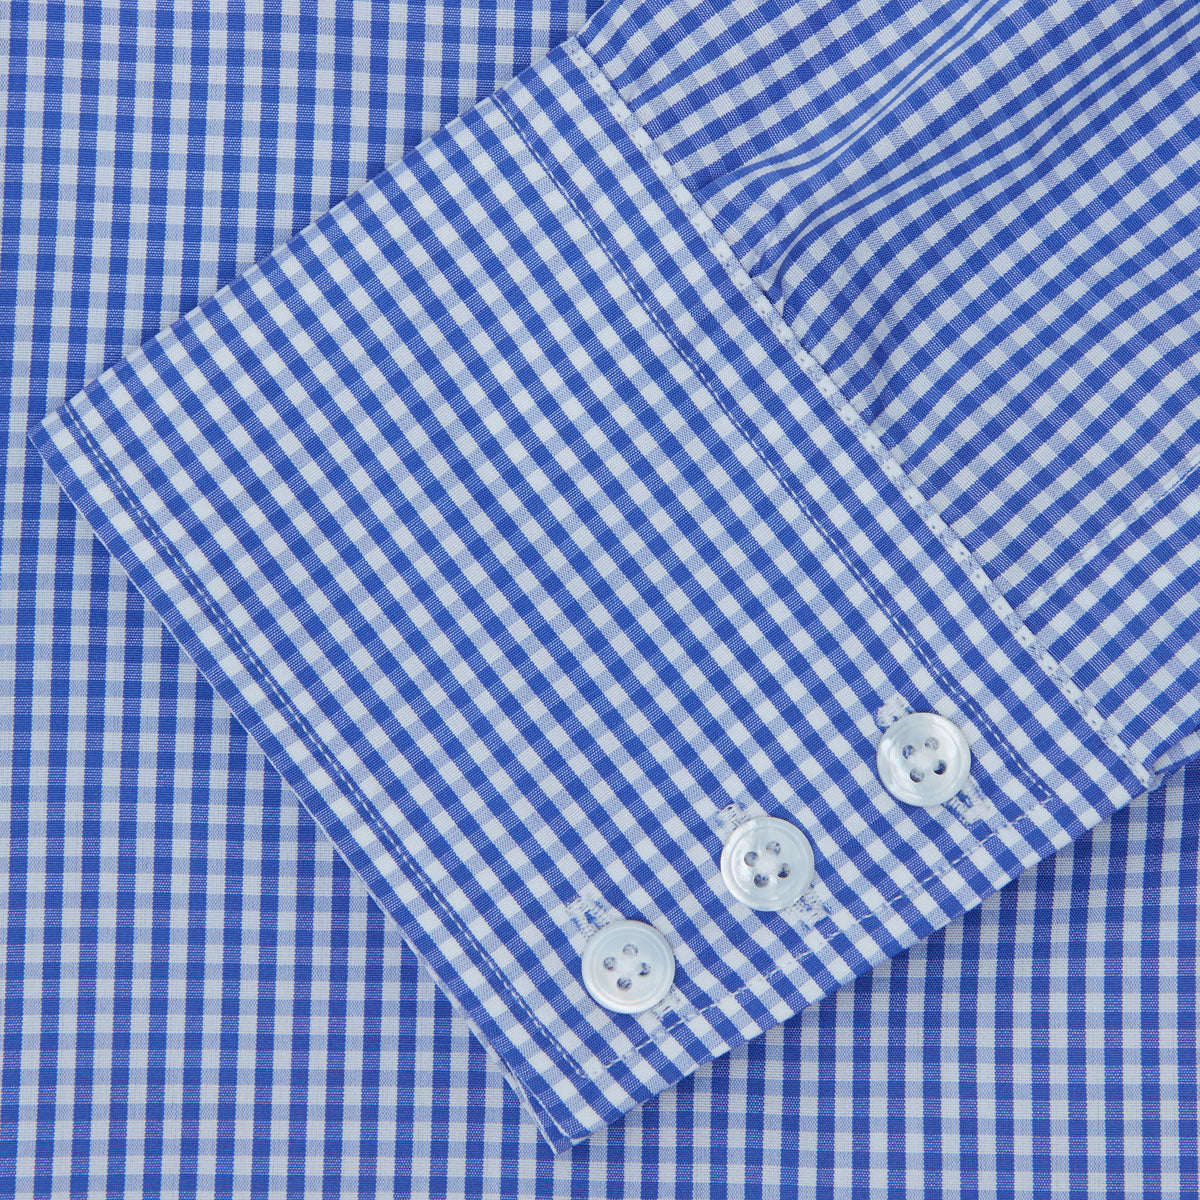 Mid-Blue Gingham Check Shirt with T&A Collar and 3-Button Cuffs